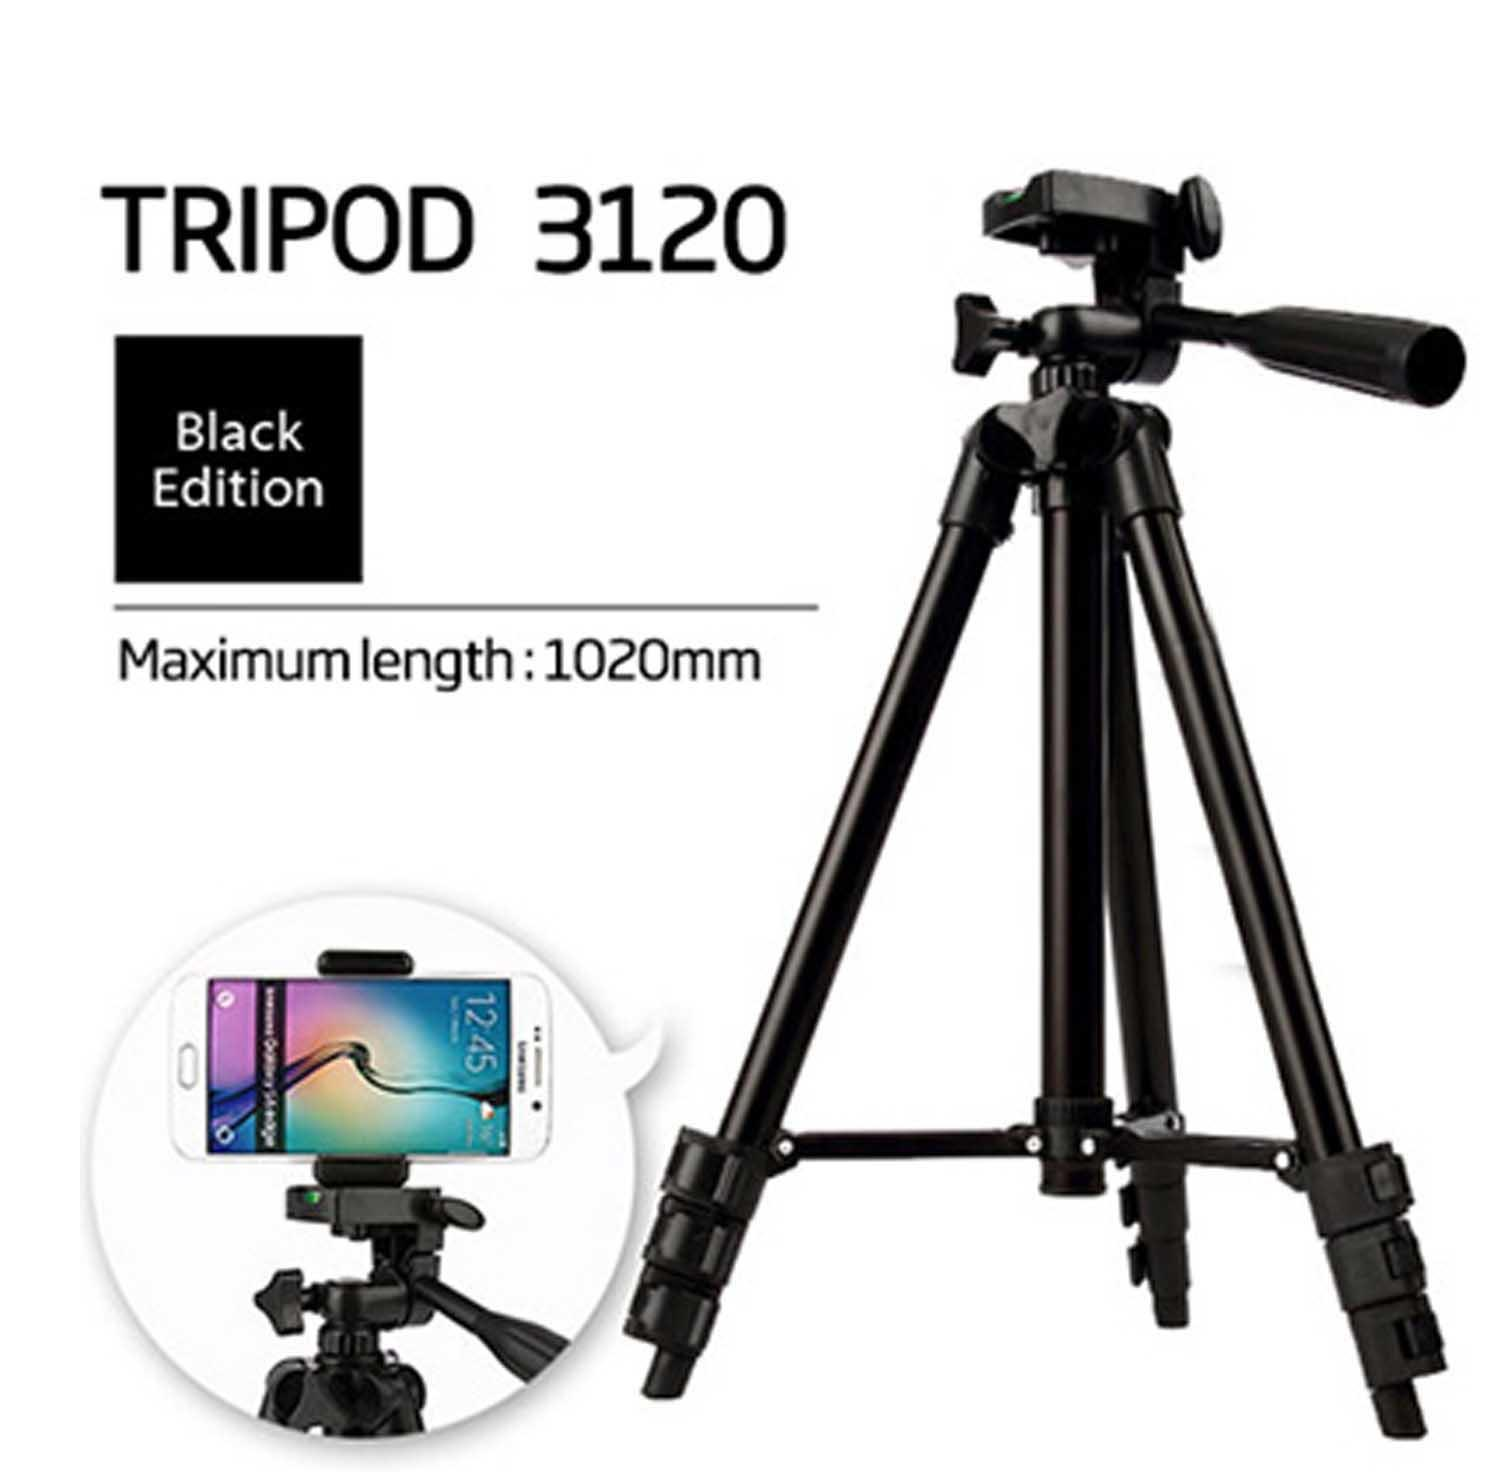 Universal Portable Digital Camera Camcorder Tripod 3120 By Wst Office Shop.